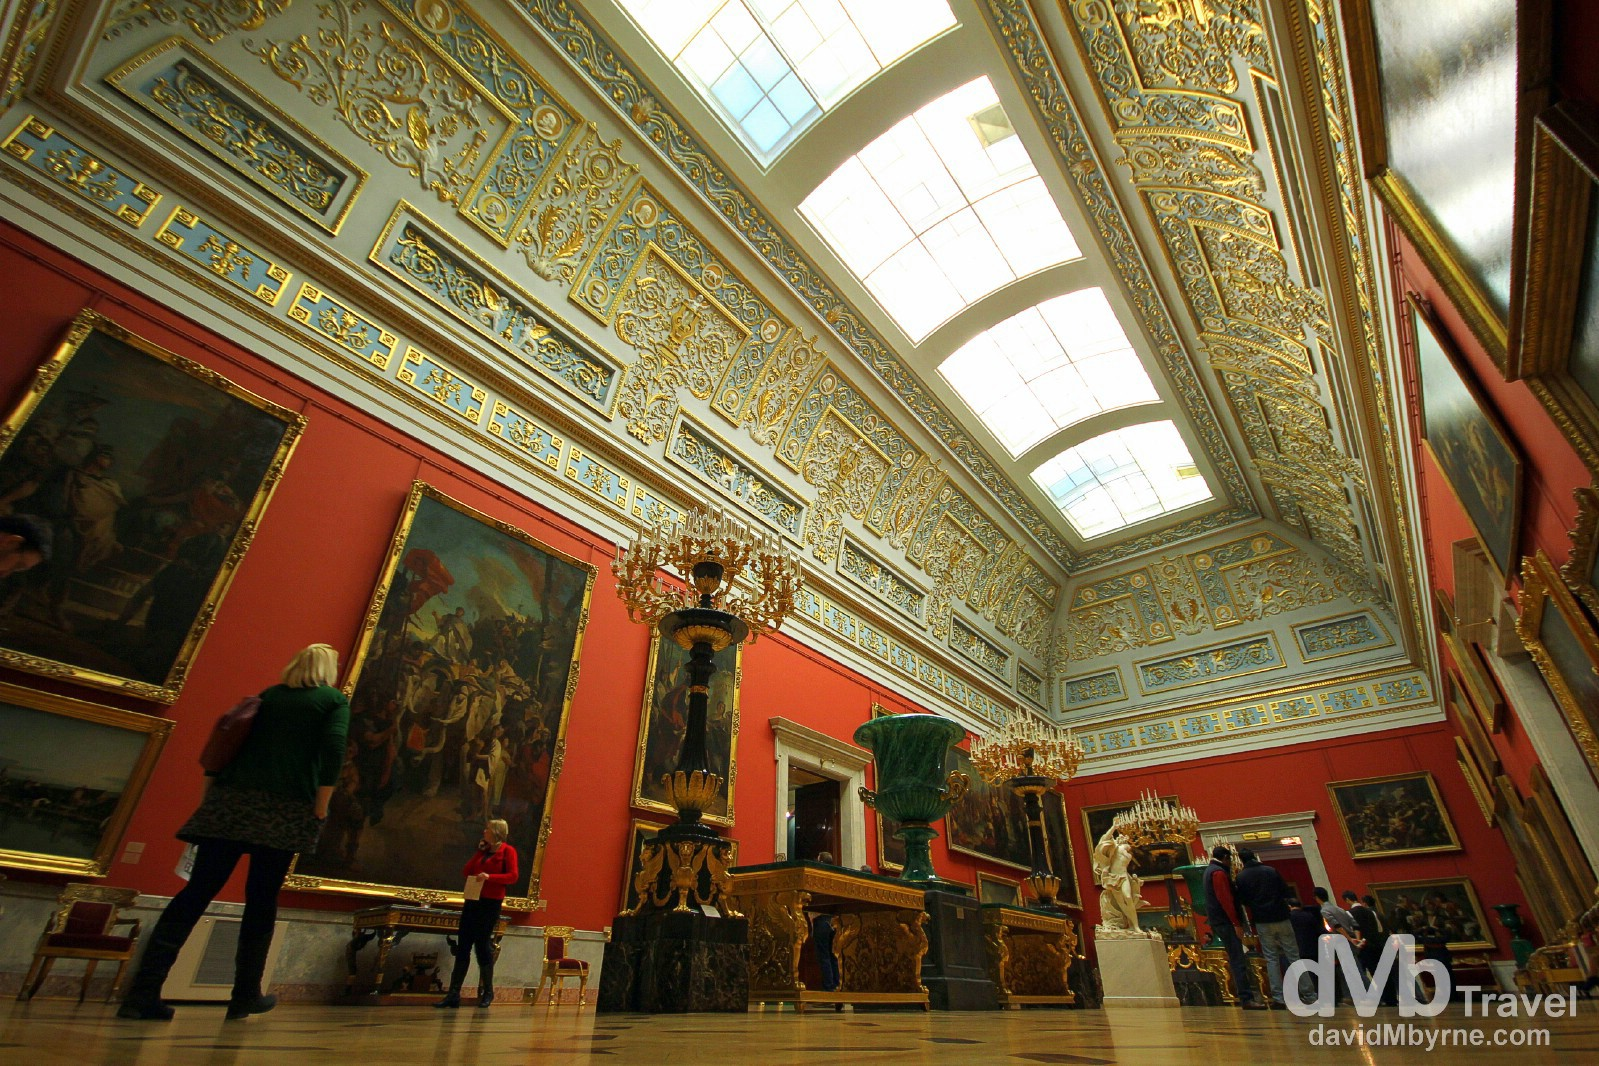 A section of the Hermitage Museum in the Winter Palace, St Petersburg, Russia. November 22nd 2012.